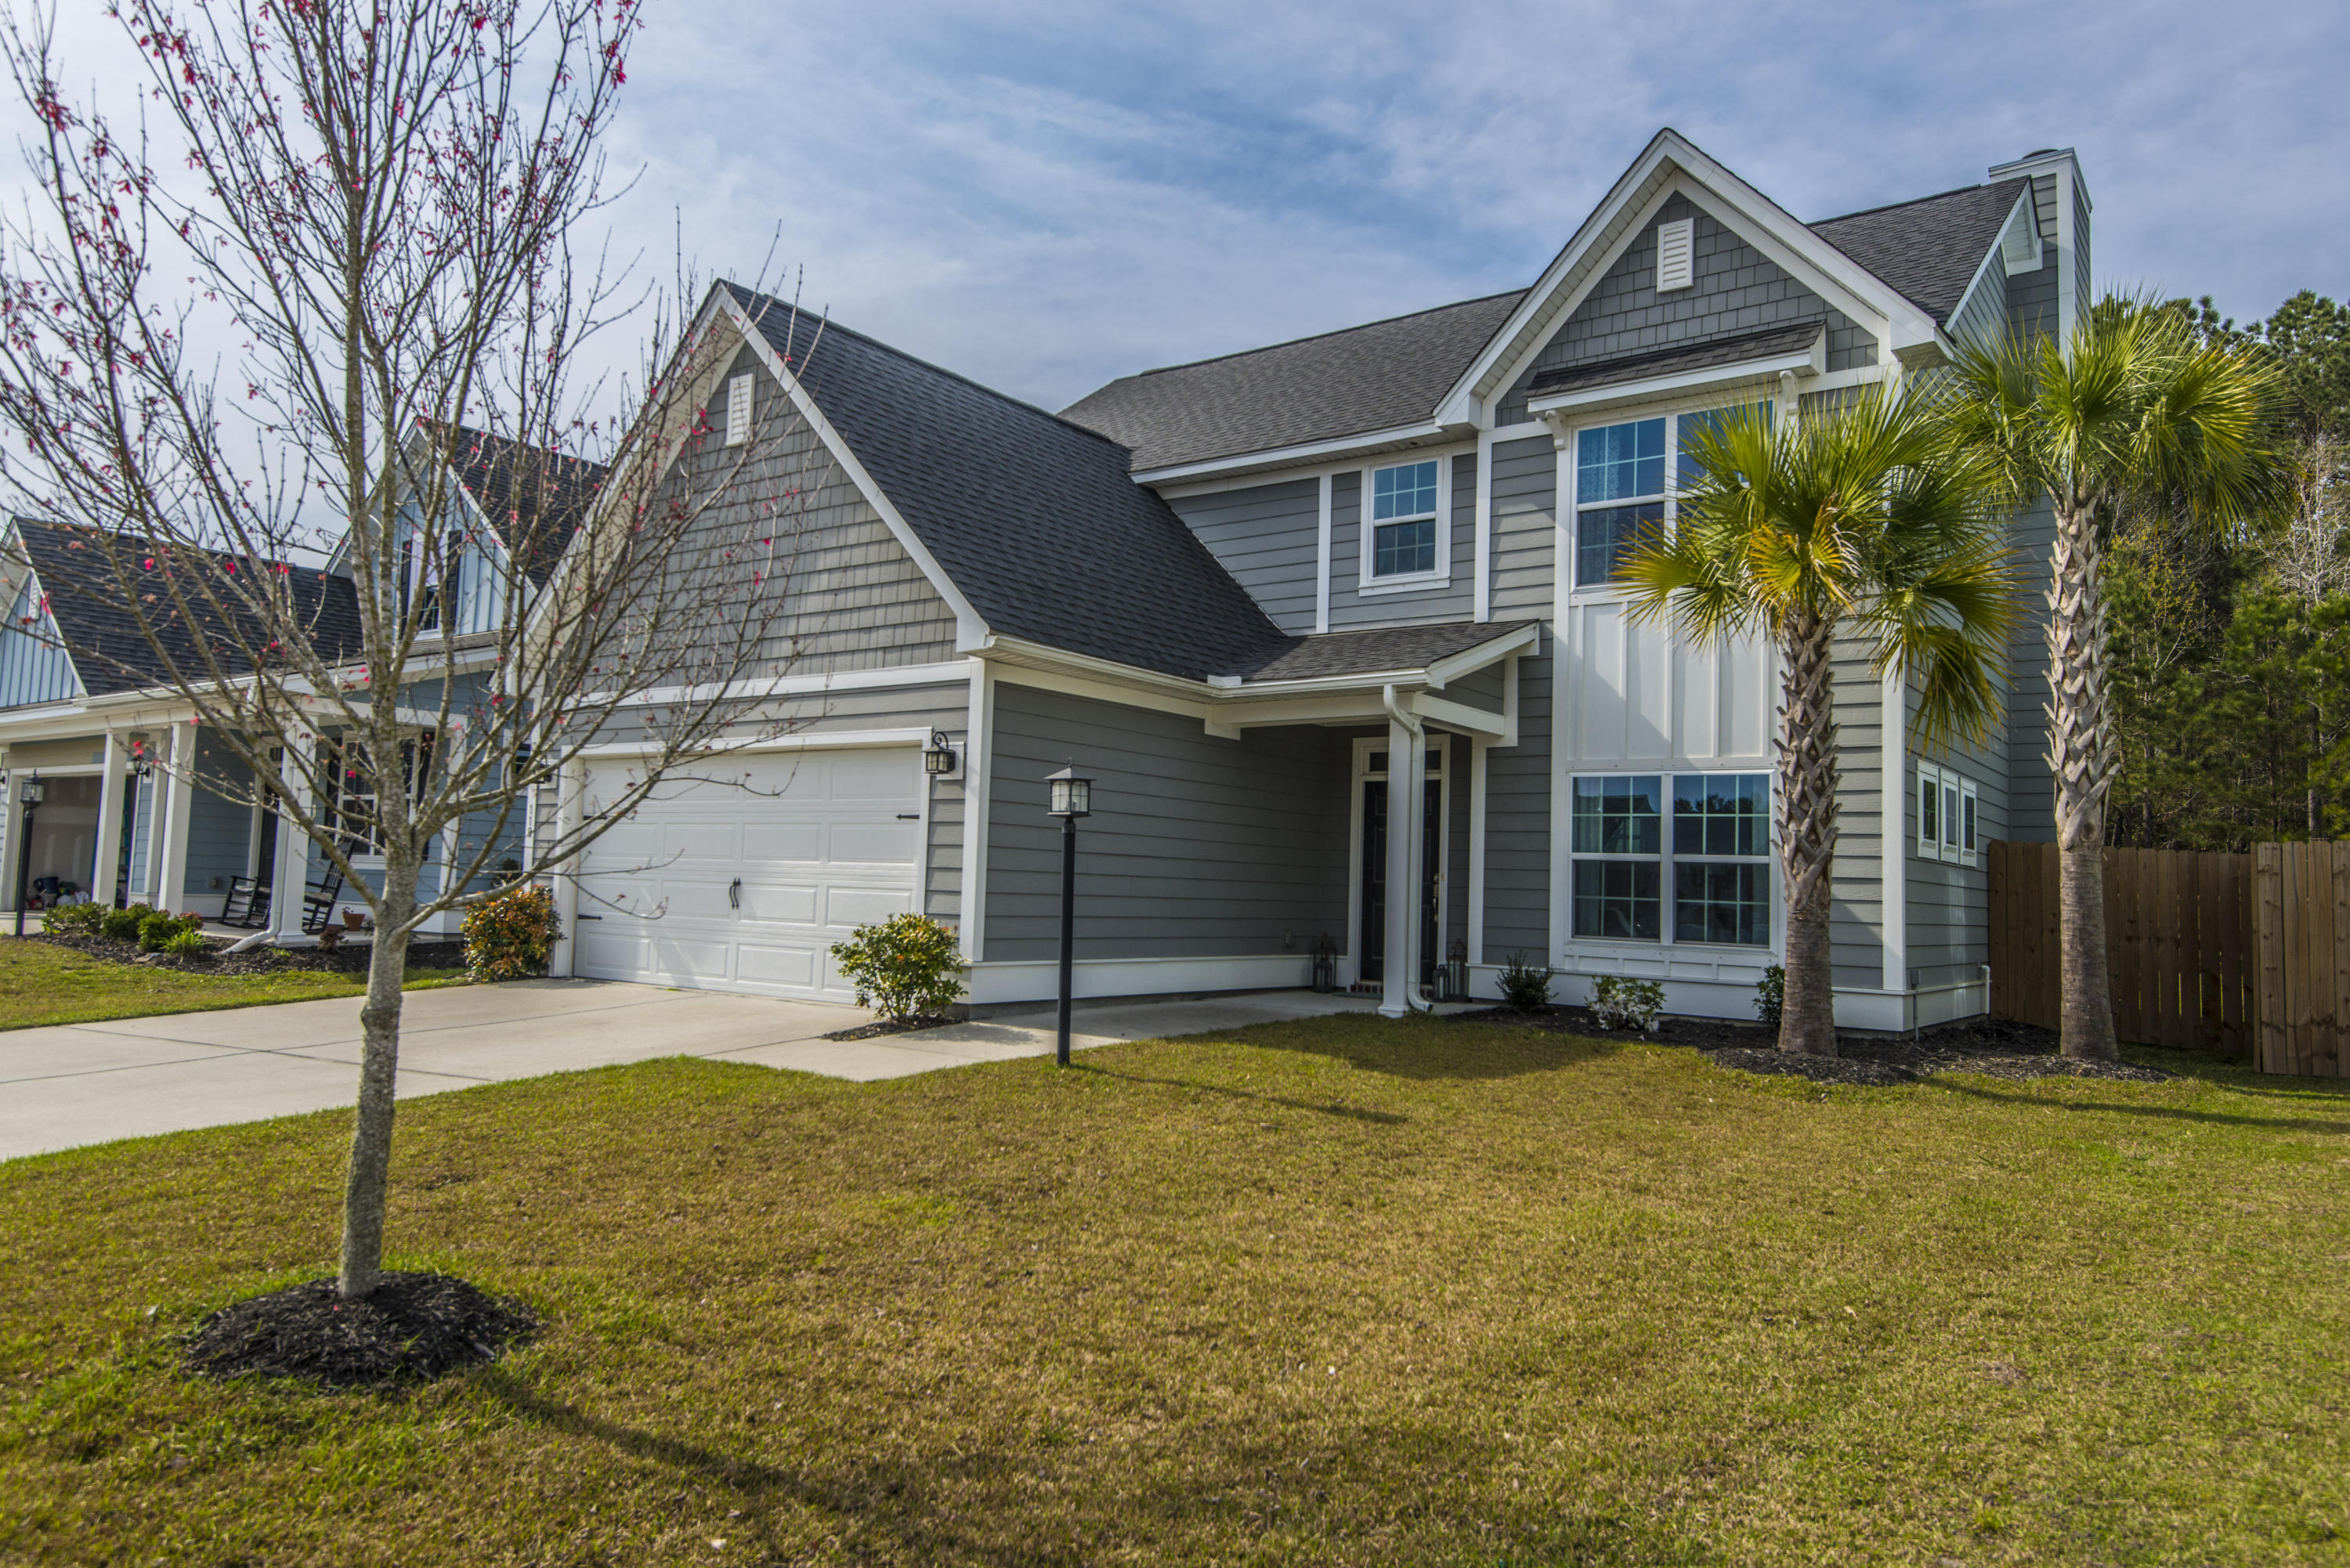 Nelliefield Plantation Homes For Sale - 118 Carriage Hill, Wando, SC - 19